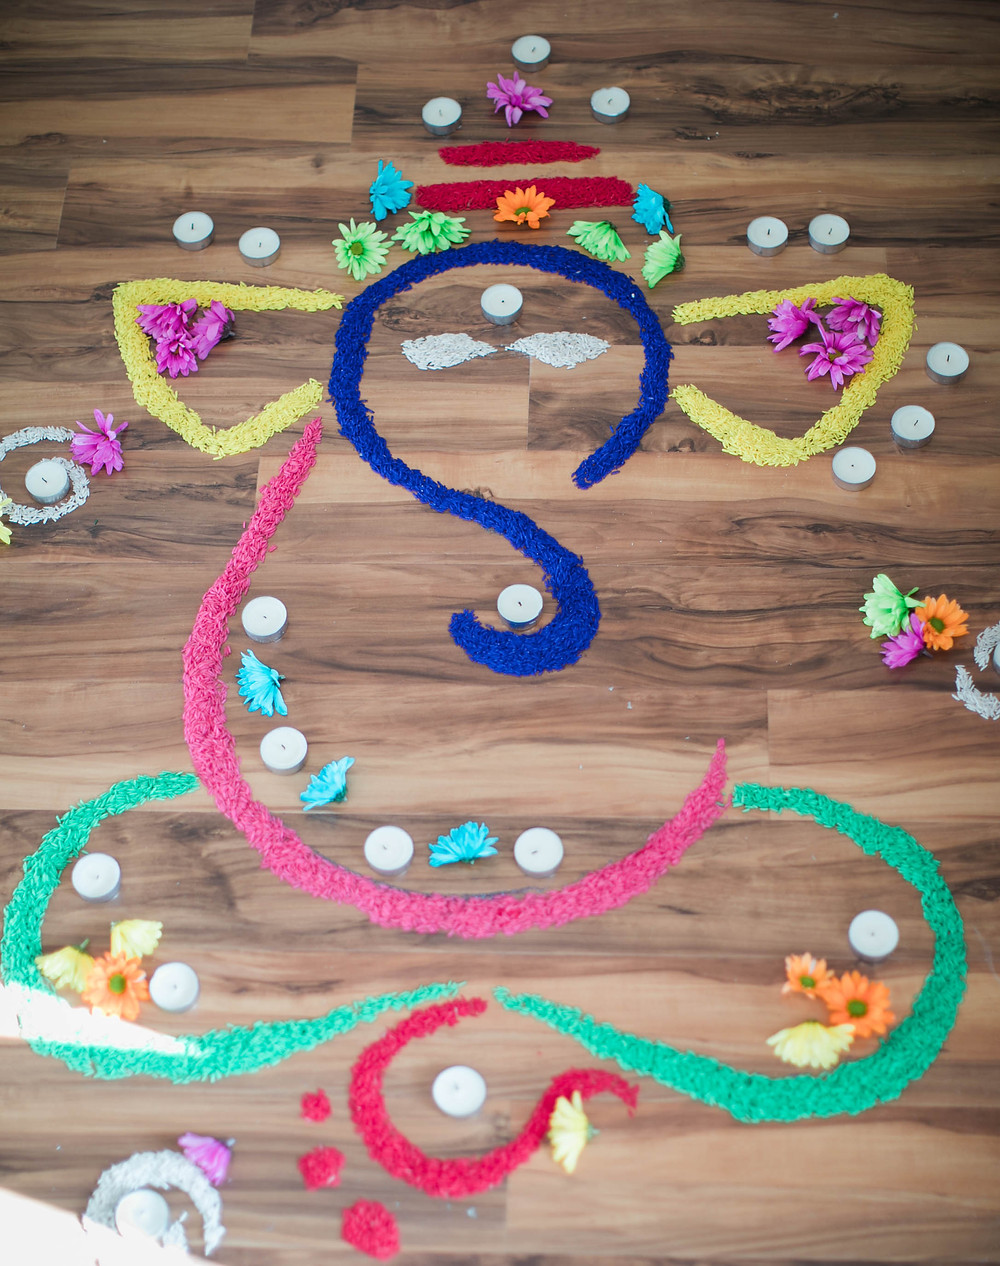 Diwali decoration with colorful rice